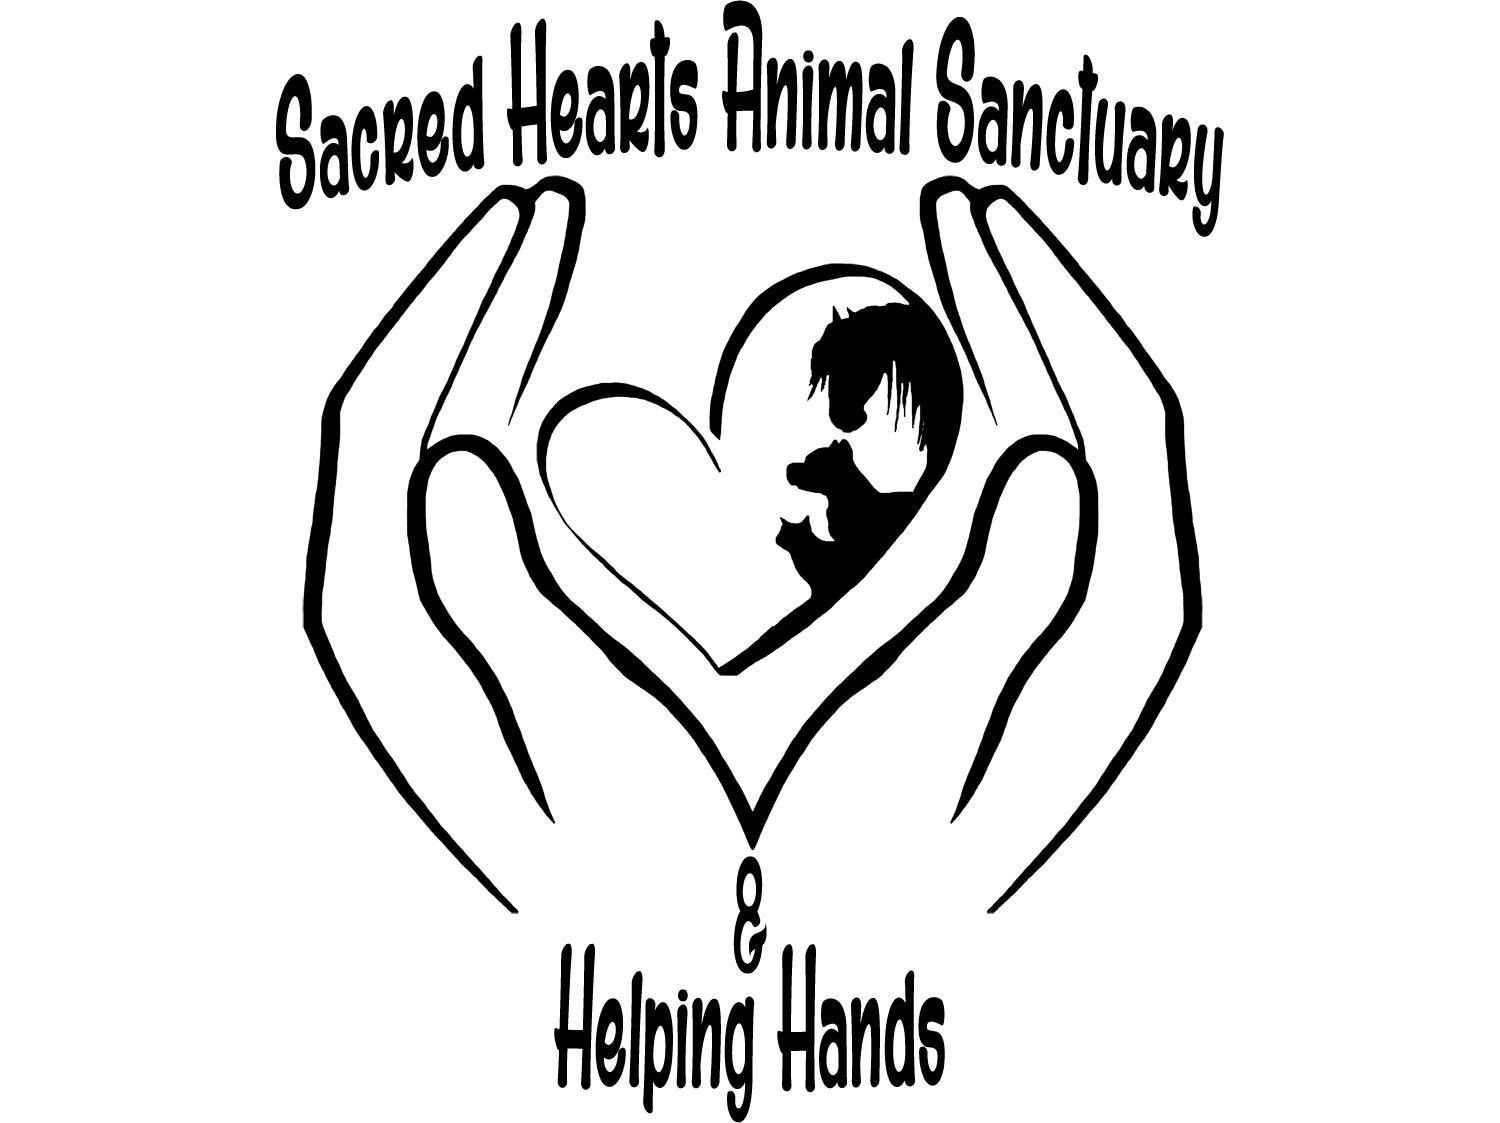 Sacred Hearts Animal Sanctuary & Helping Hands